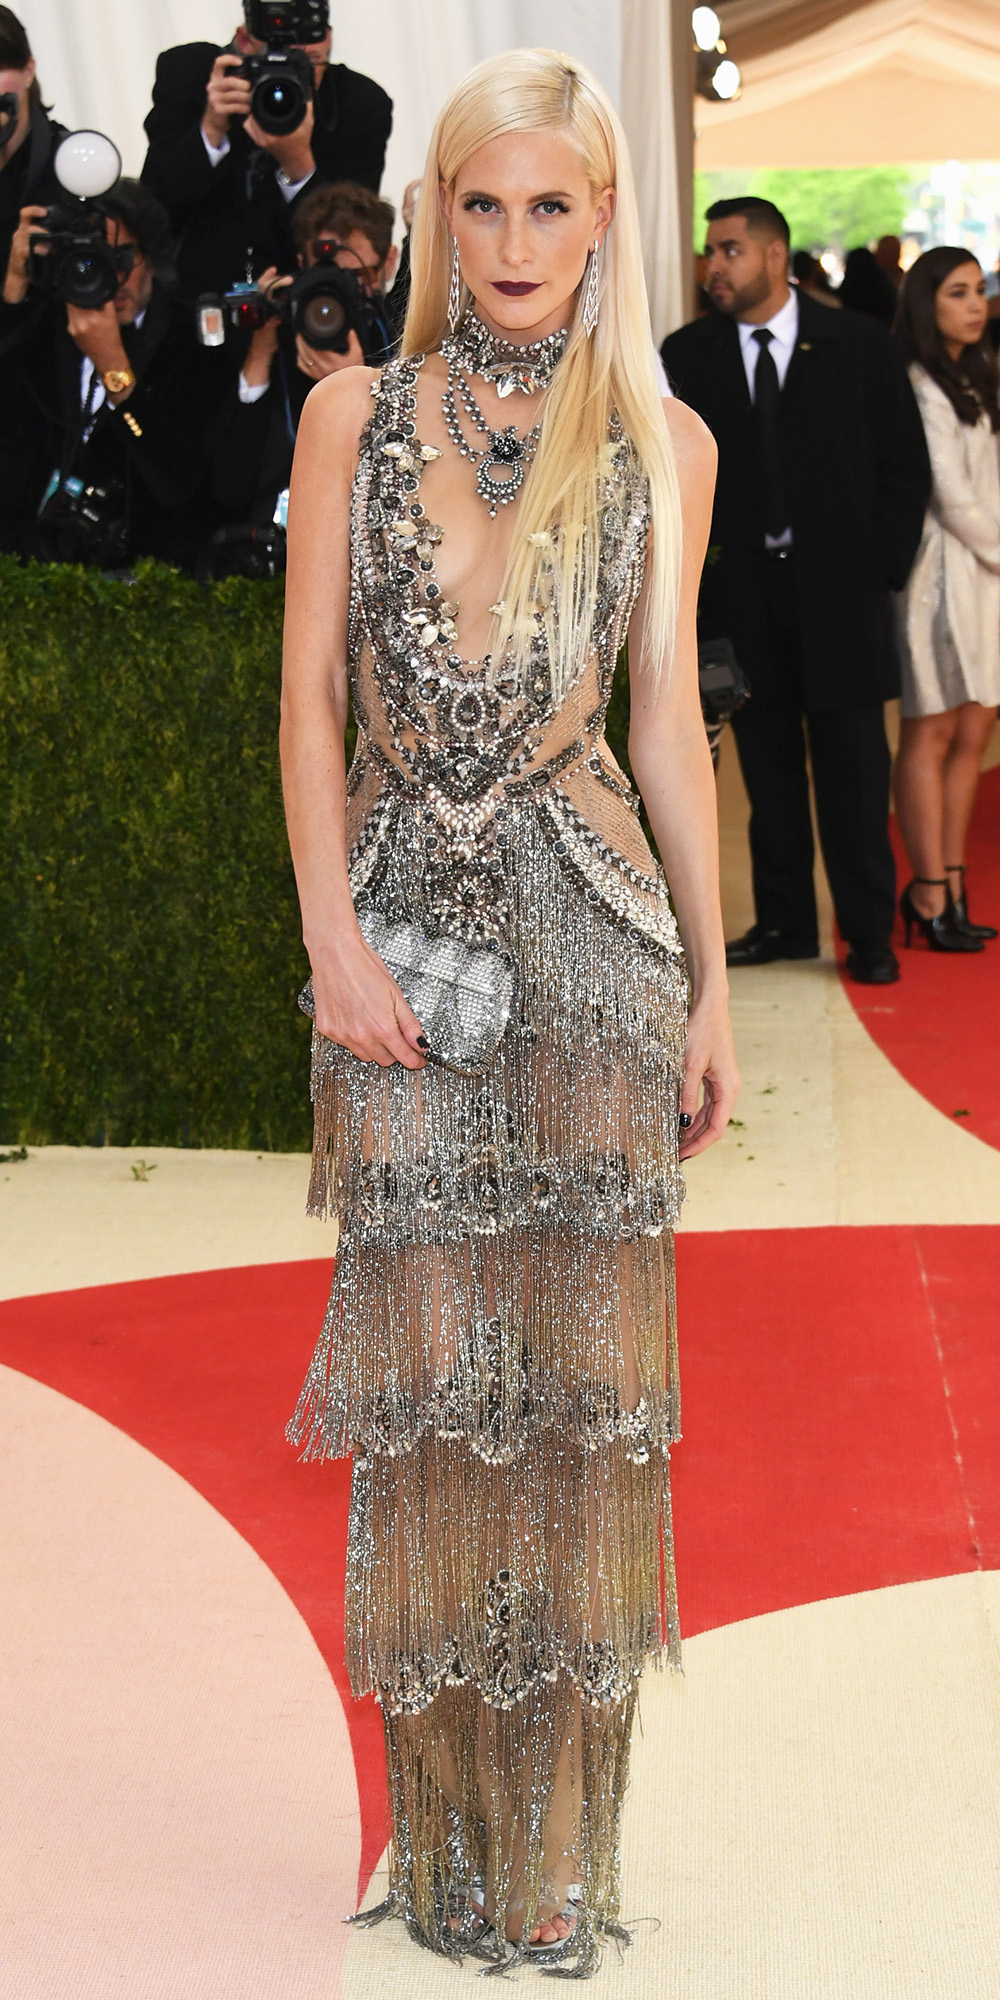 Celebrities Wearing Bling Poppy Delevingne Wears a Deep V-Neck Sleeveless Sequin and Embilleshed Gown with Silver Beaded Clutch